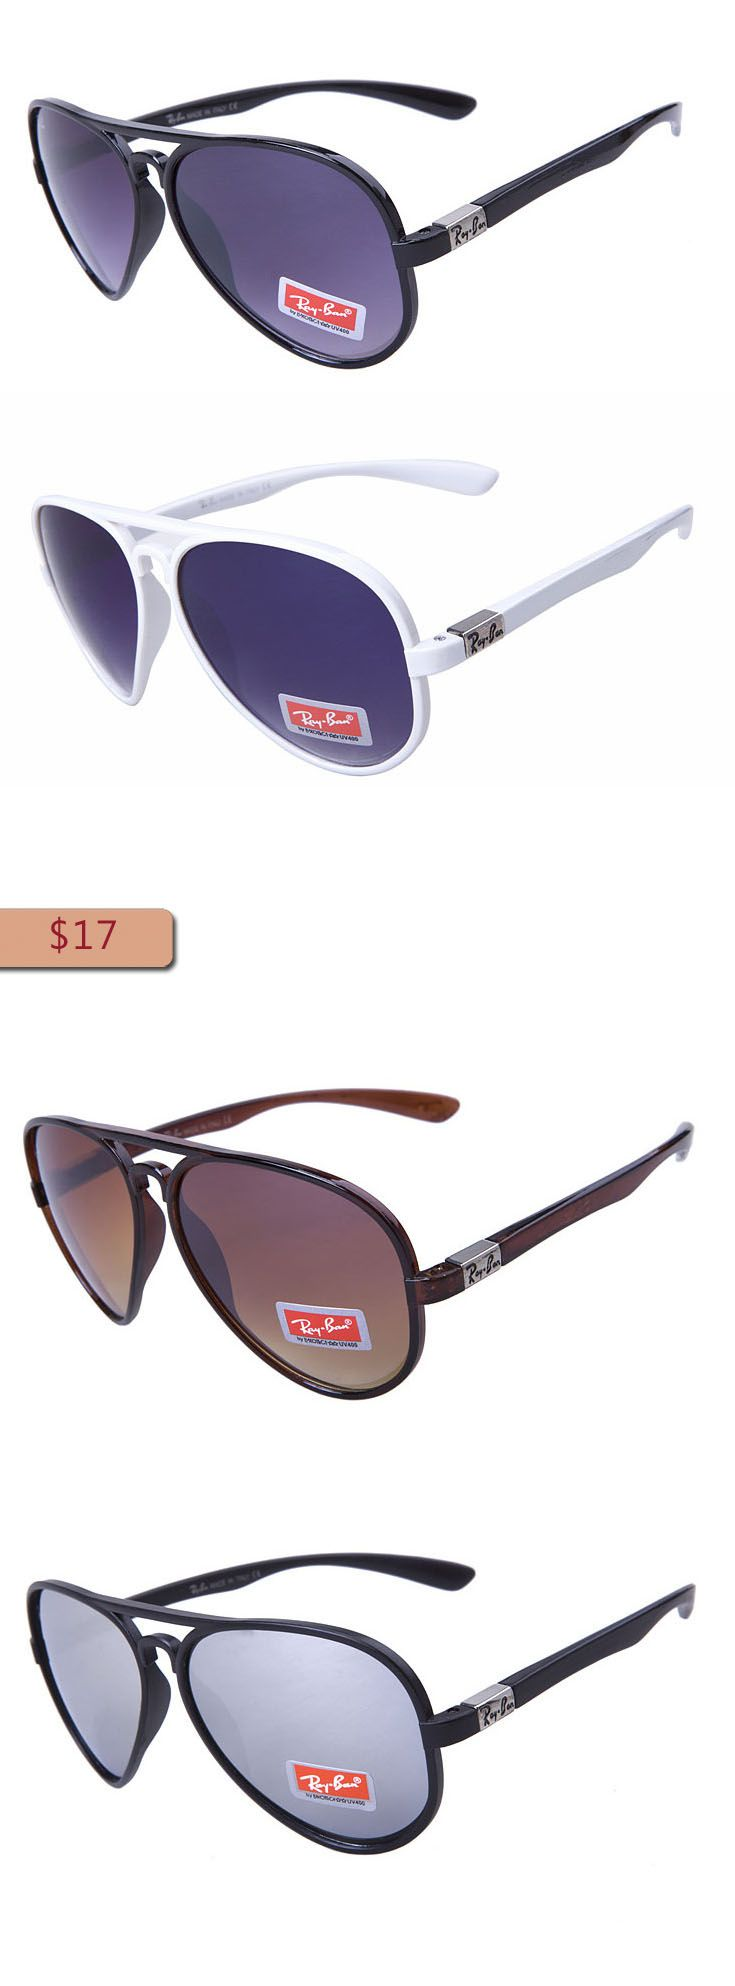 Ray Ban Us Outlet Voltage For Household « Heritage Malta